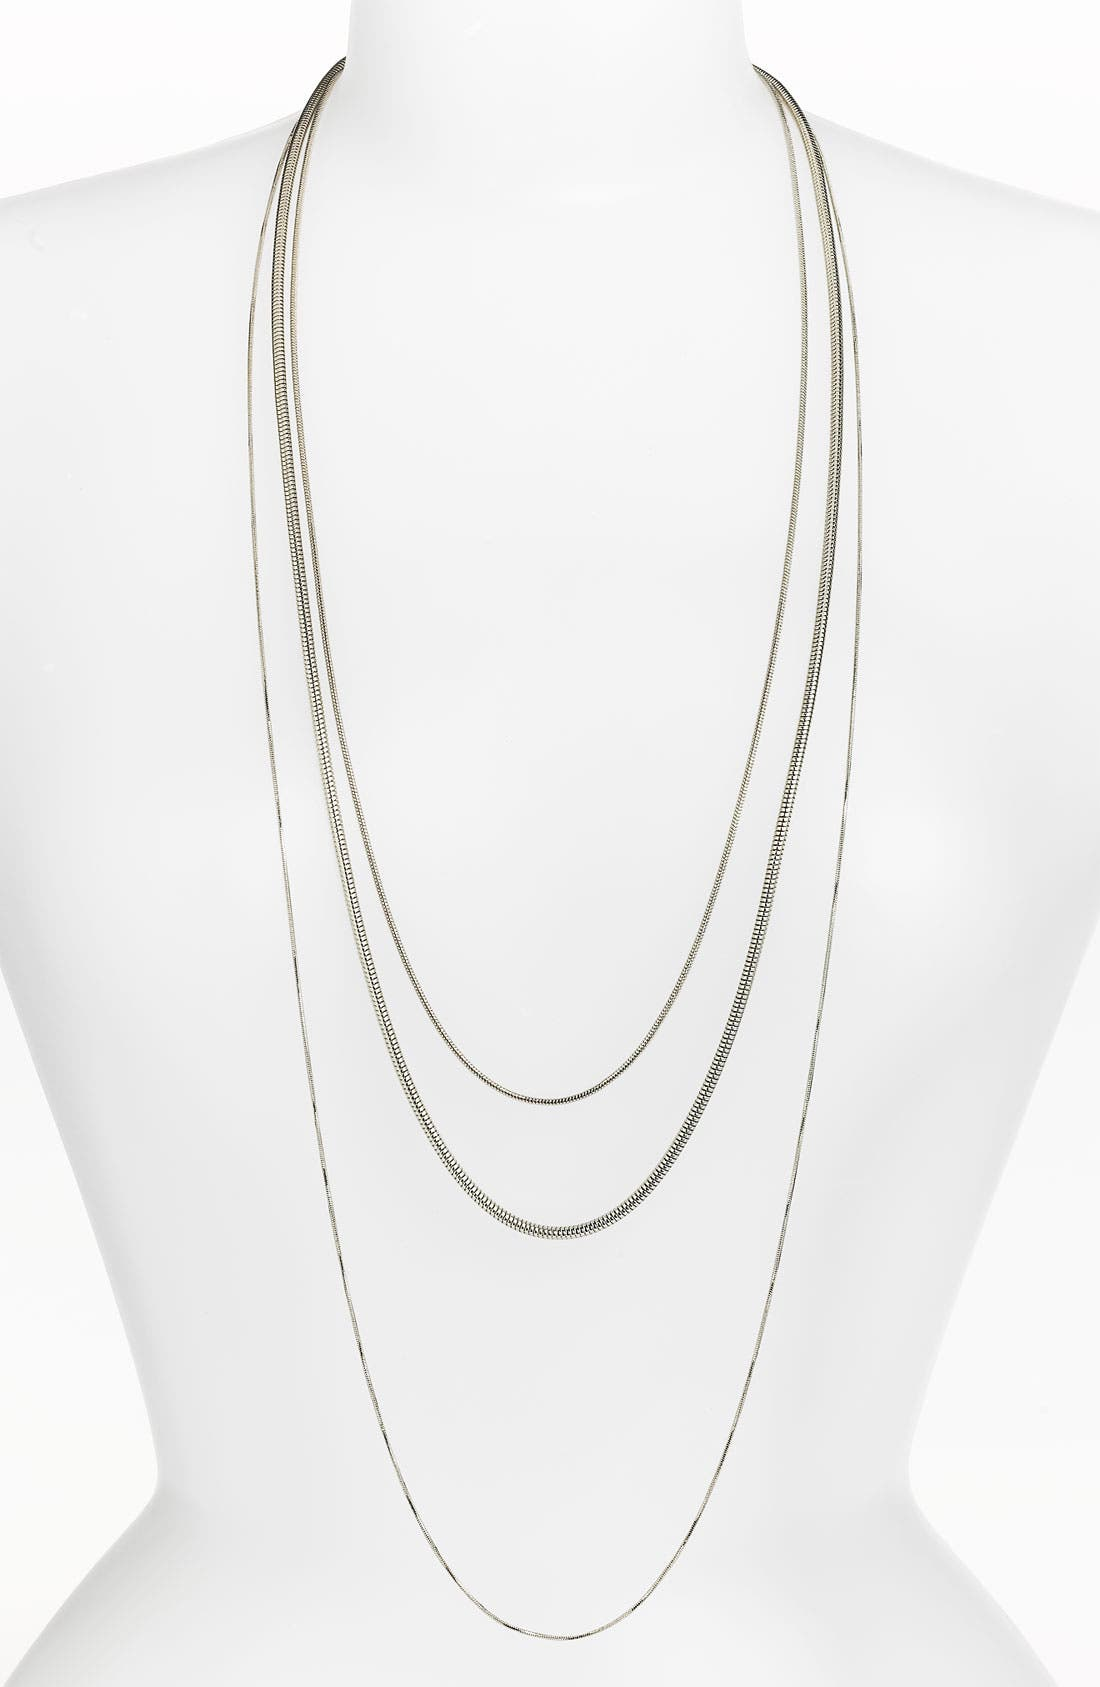 Alternate Image 1 Selected - BP. Multi Chain Necklace